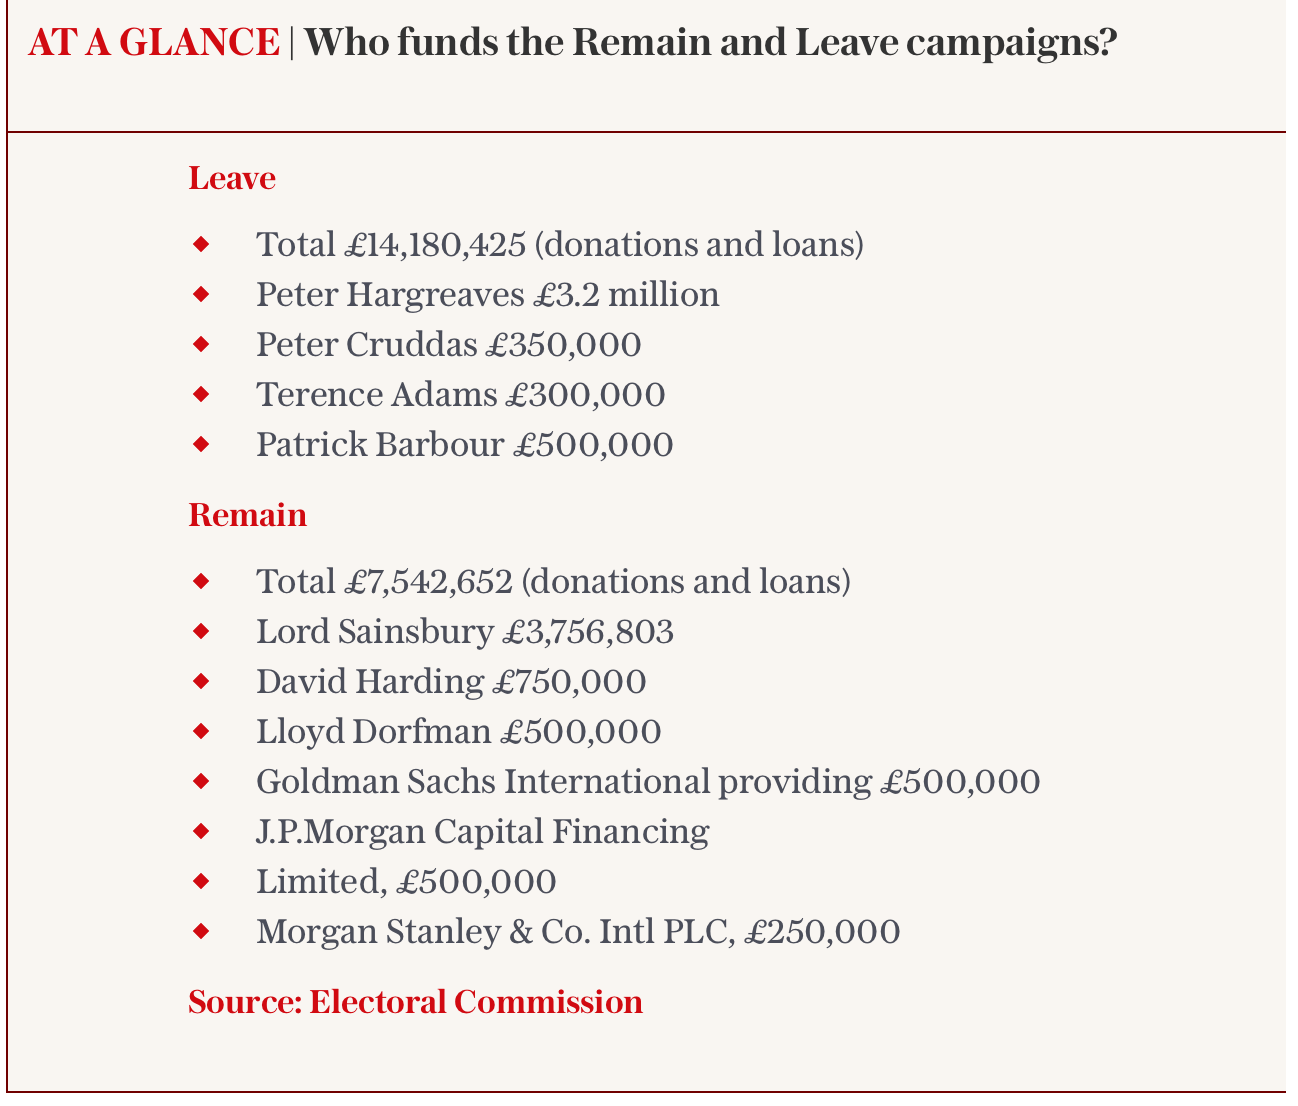 Funders for stay and leave